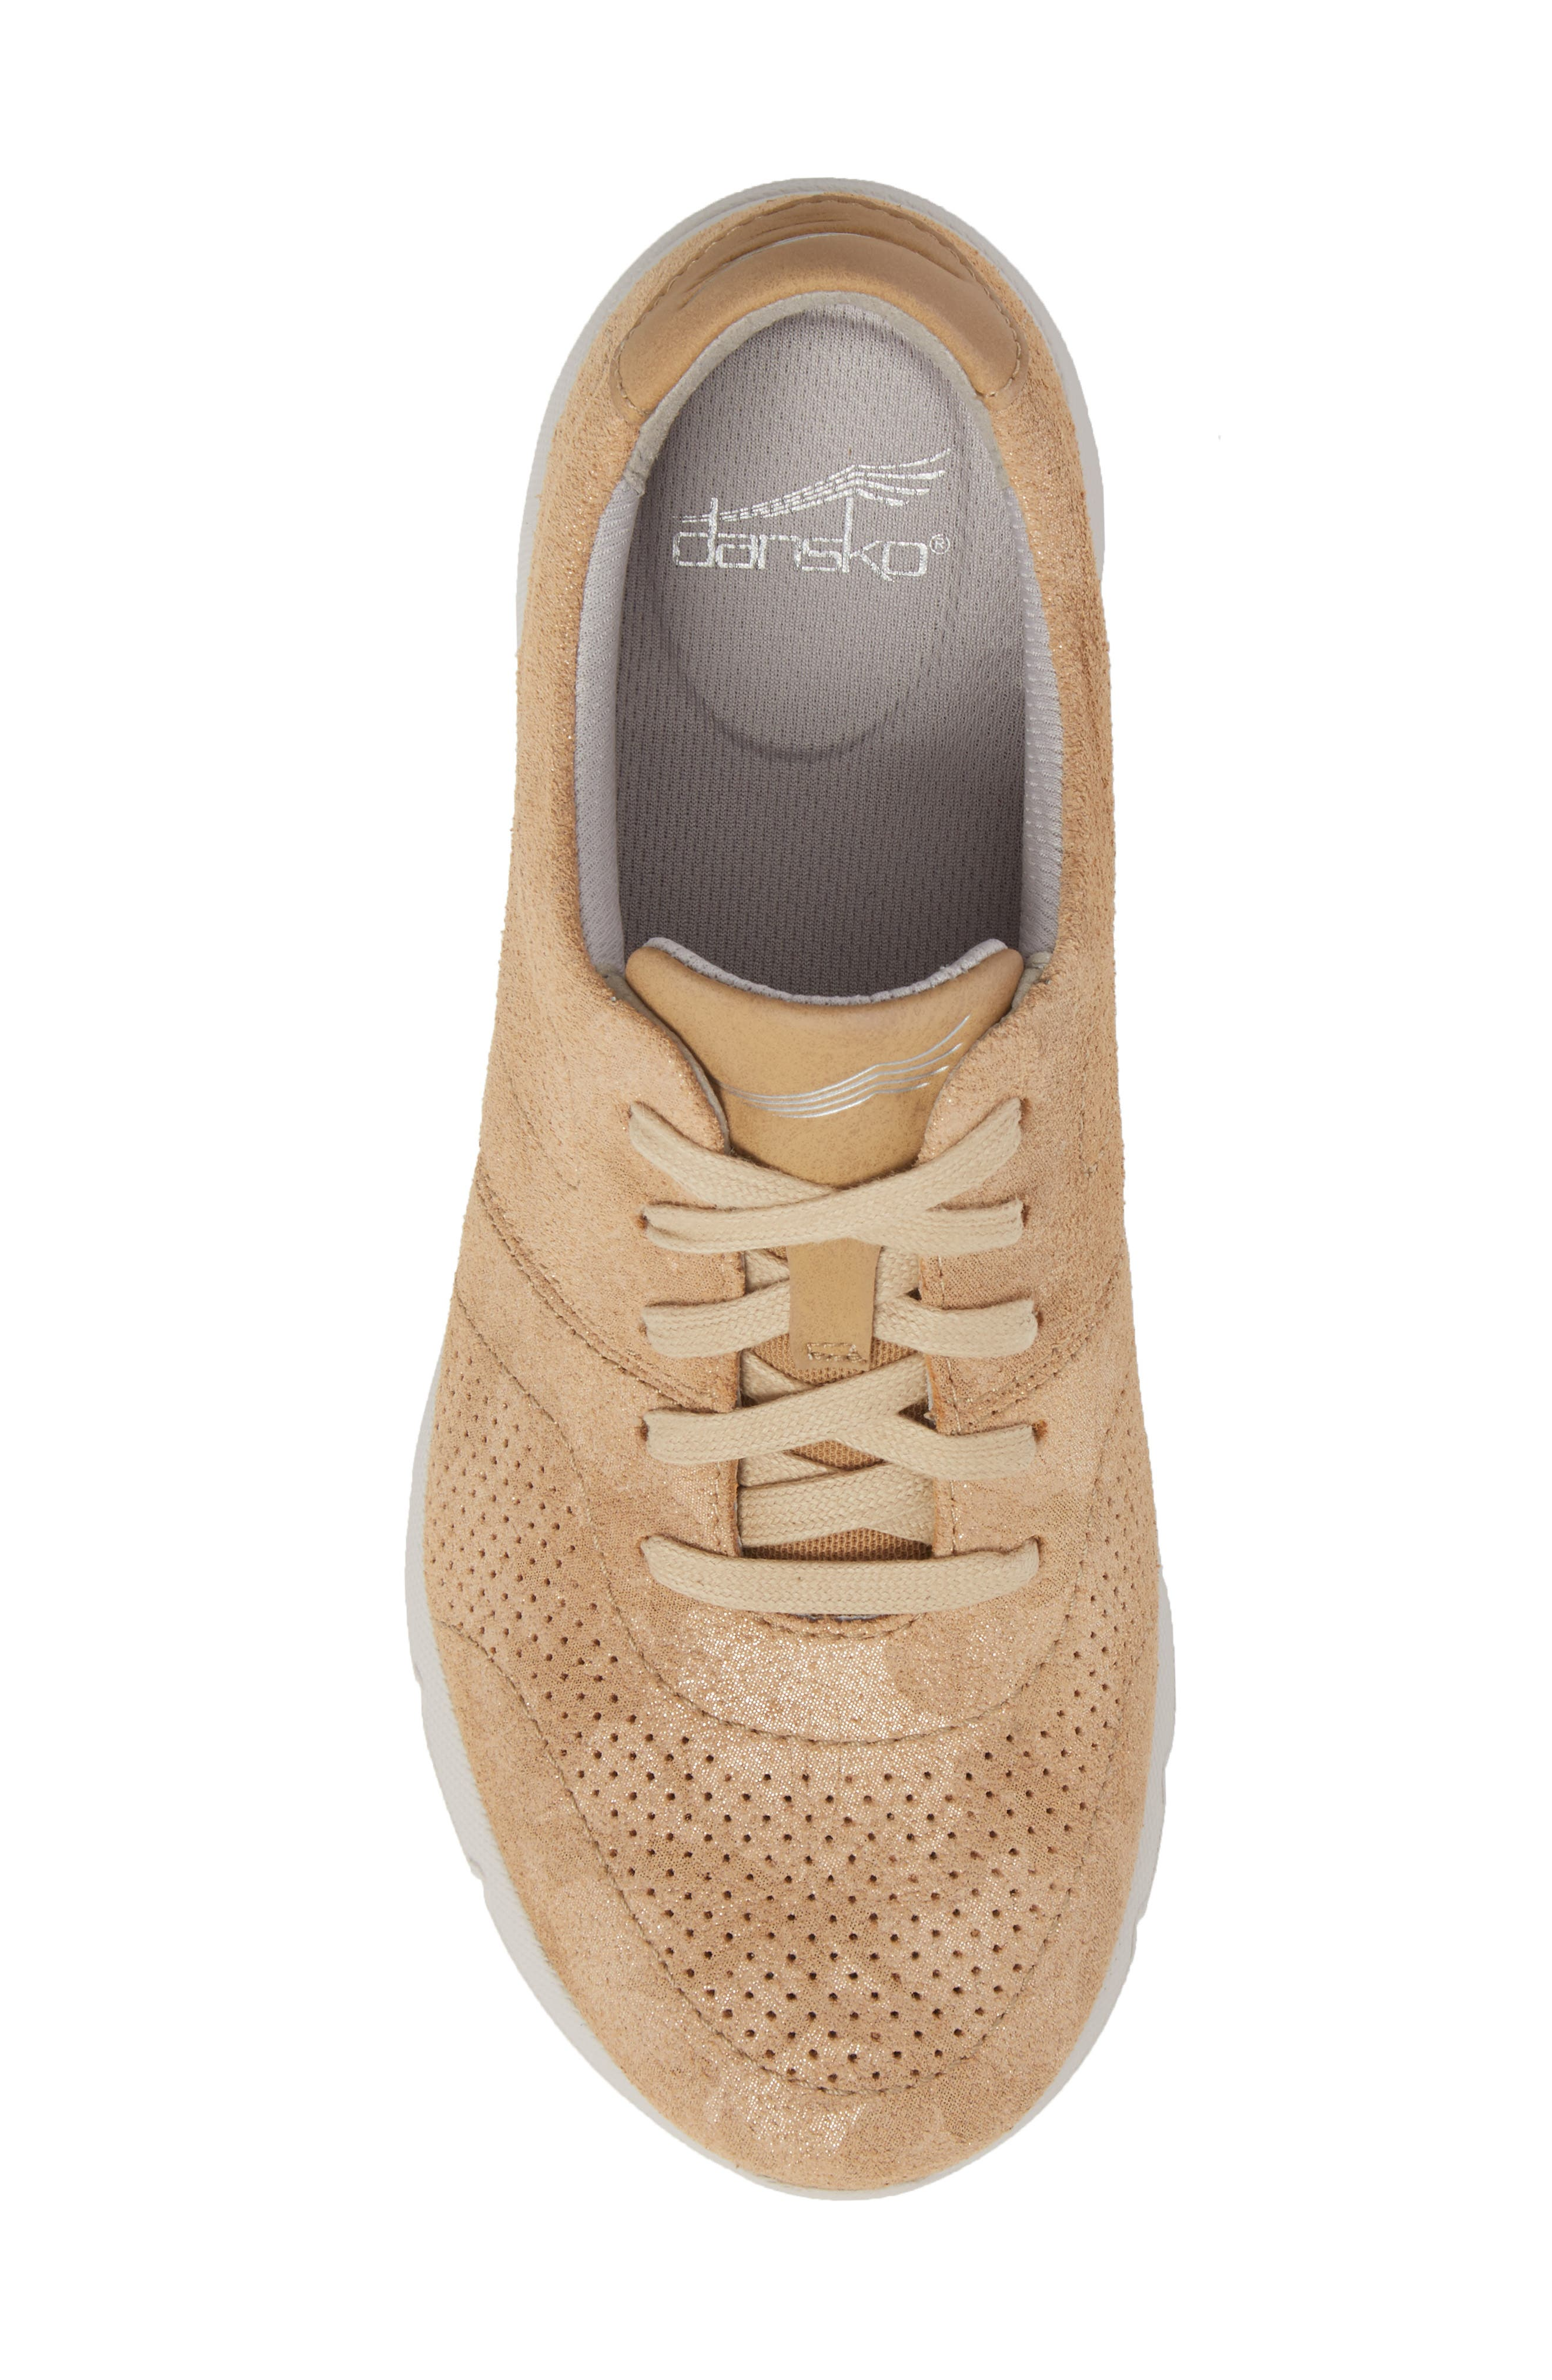 Alissa Sneaker,                             Alternate thumbnail 5, color,                             GOLD PRINT LEATHER